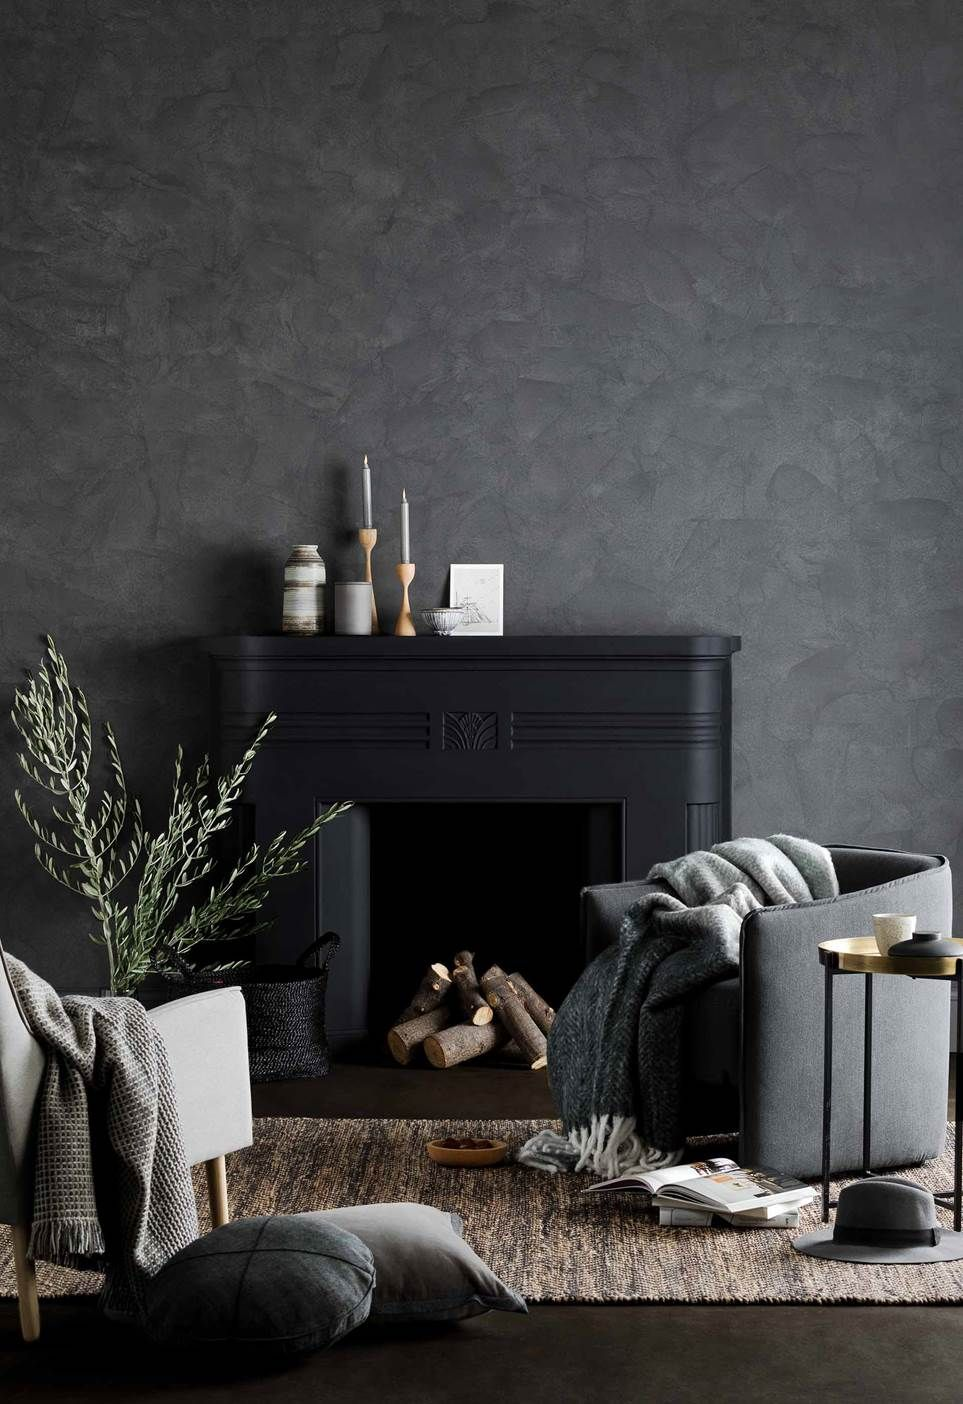 17 Dark Wall Ideas For Homes Walls And Interiors Feature